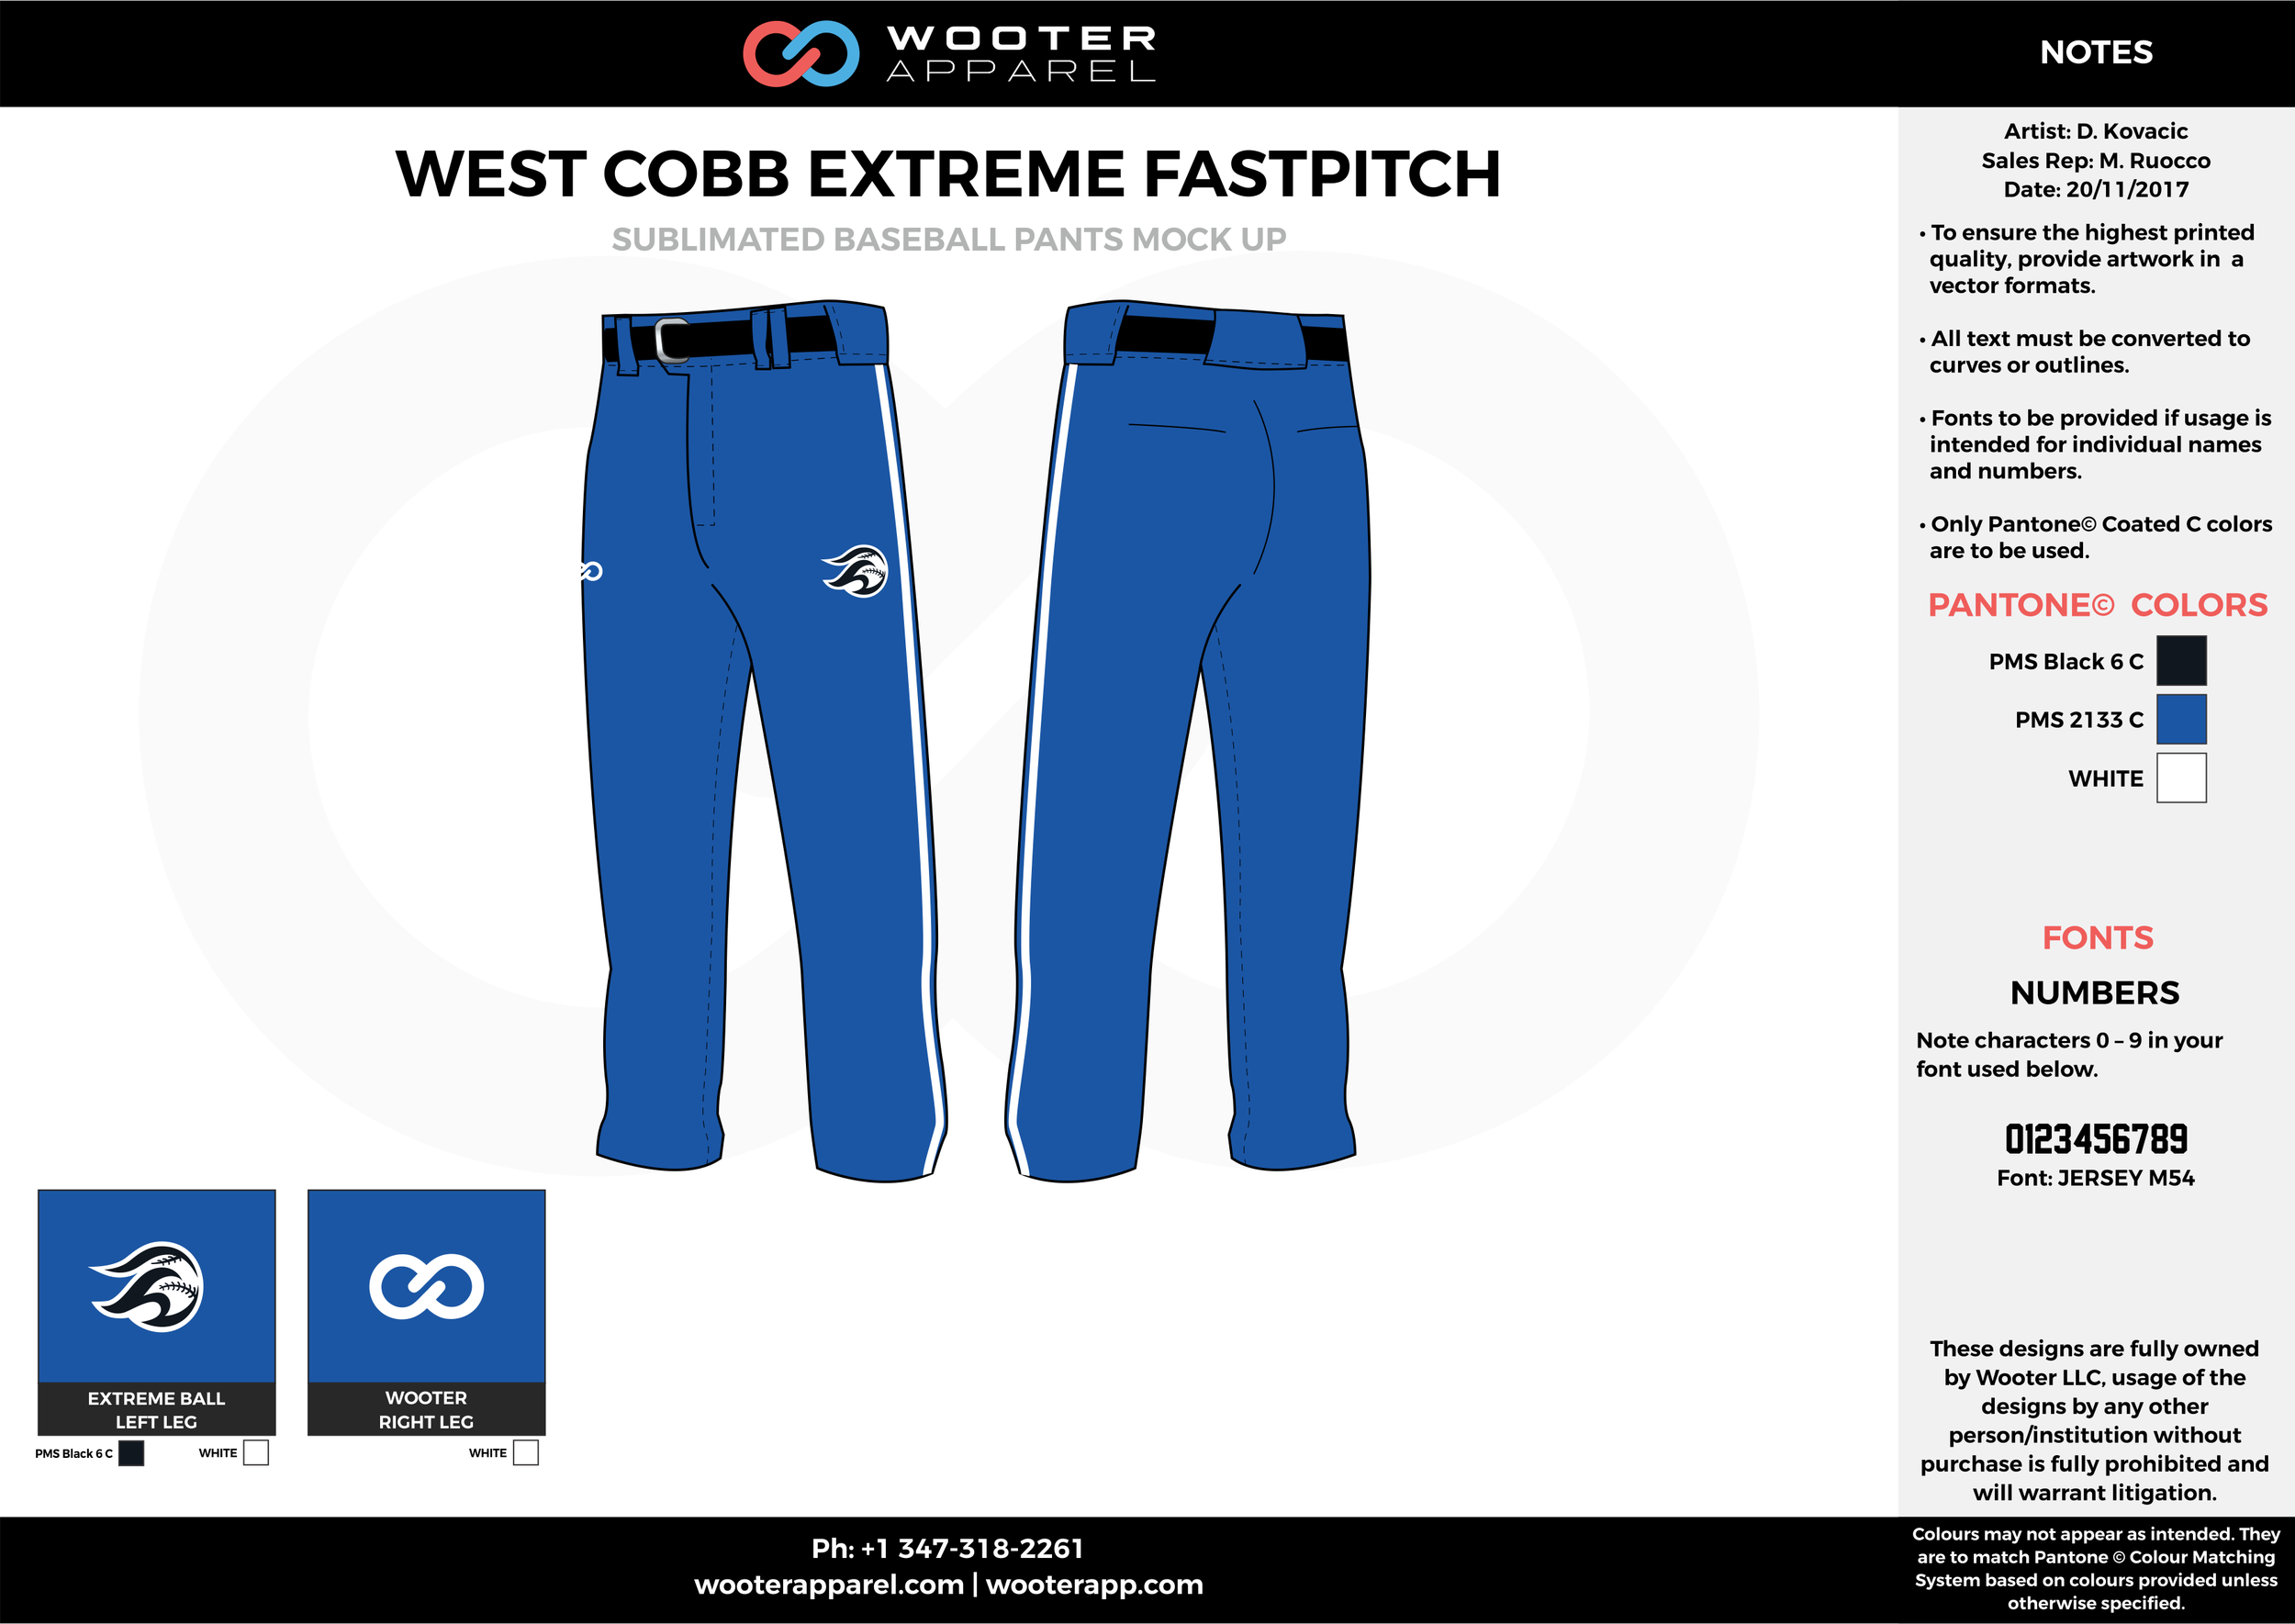 WEST COBB EXTREME FASTPITCH blue black white baseball uniforms jerseys pants